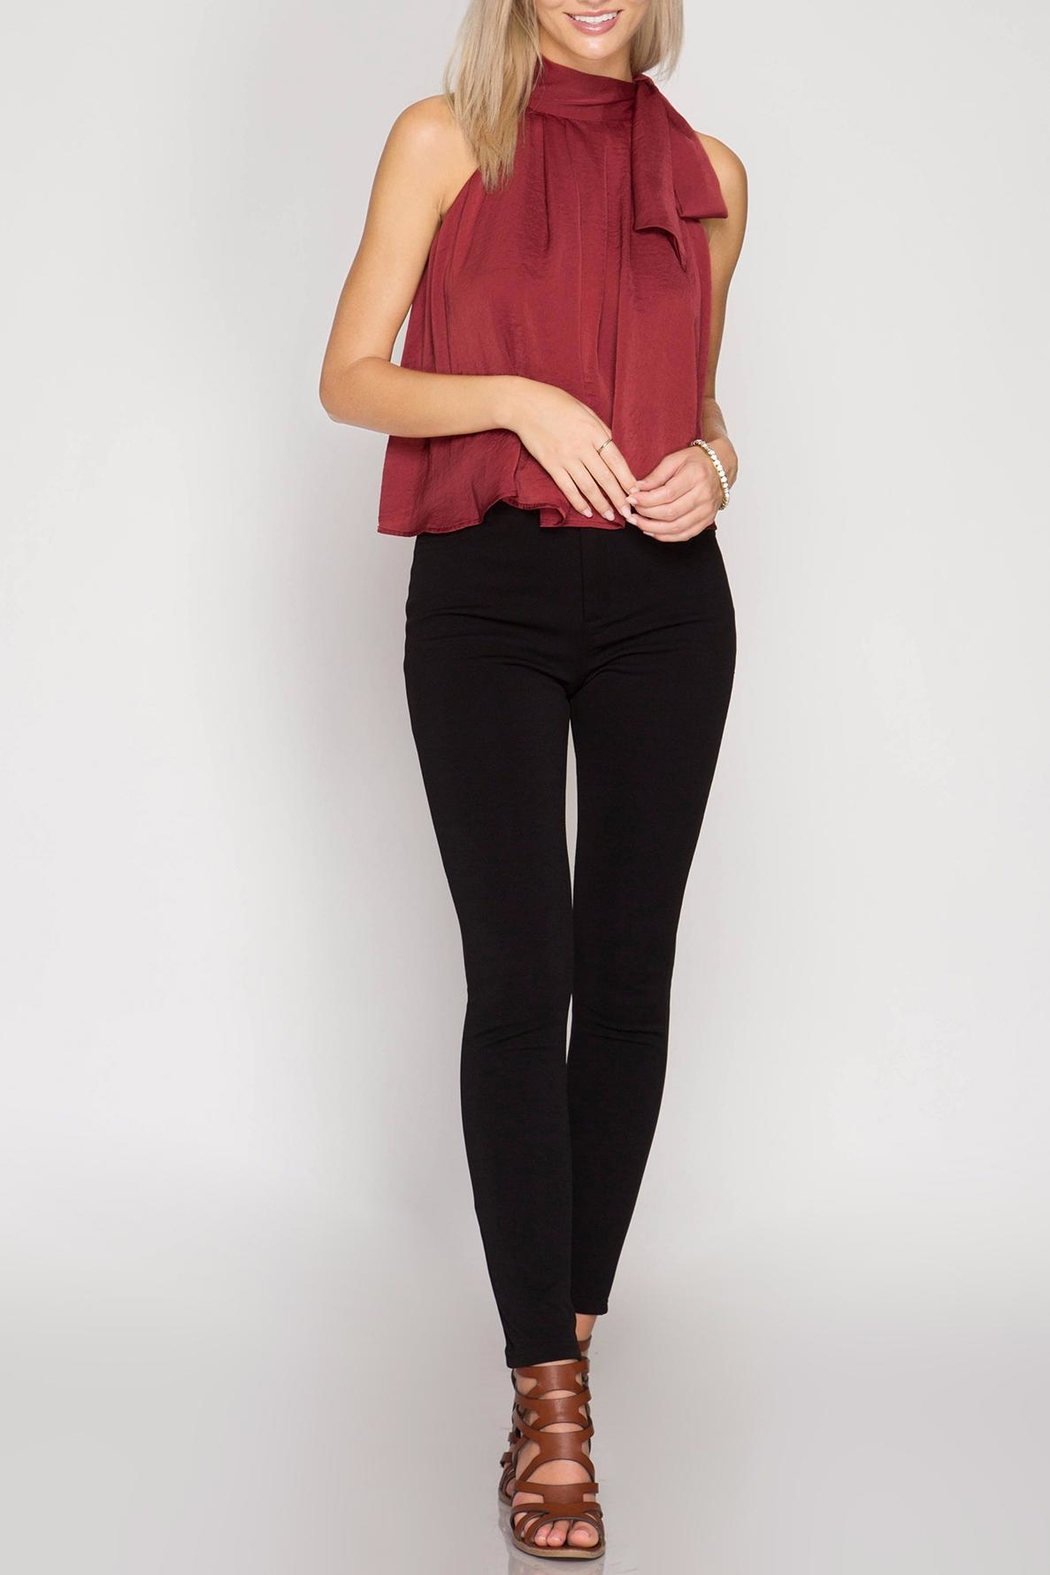 She + Sky Satin High Neck Top - Front Cropped Image